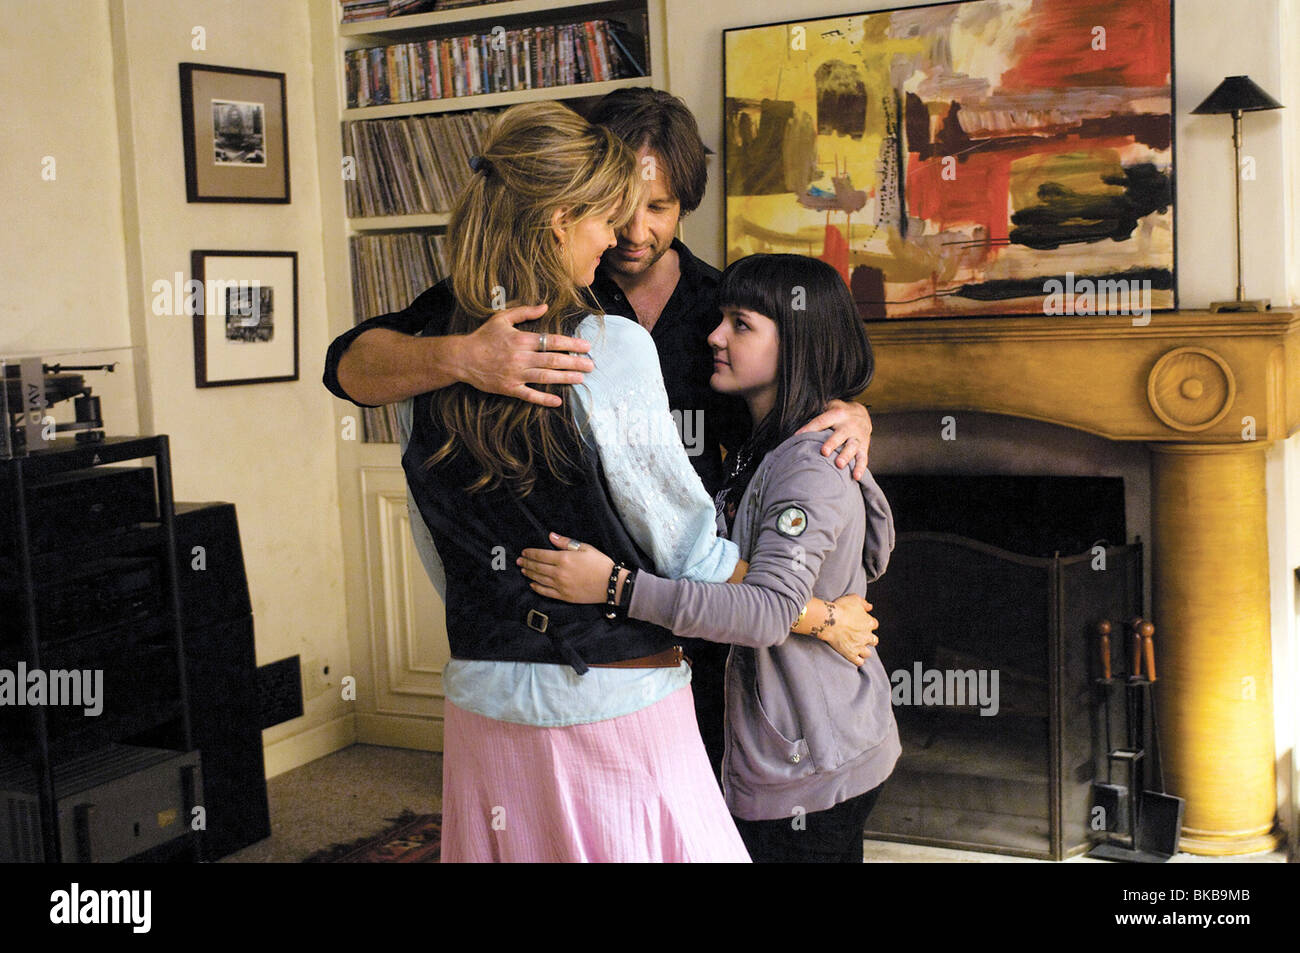 Californication Year  2008 Created by Tom Kapinos Director  David Von Ancken Season 2 - episode 10 In Utero David - Stock Image